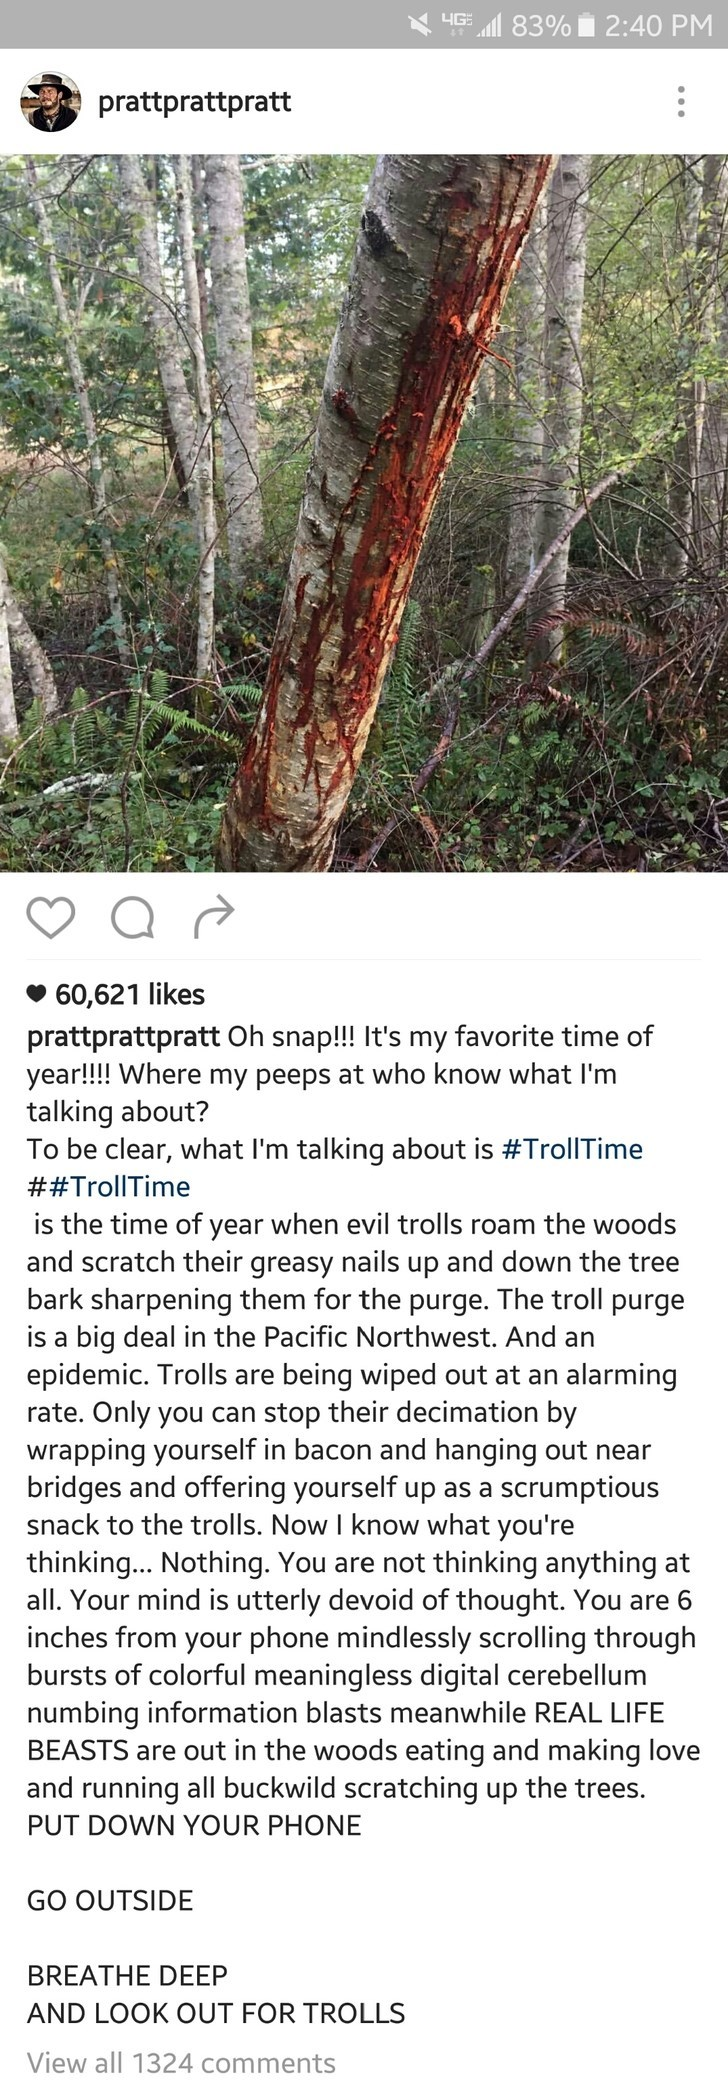 Terrestrial plant - HG 83% 2:40 PM prattprattpratt 60,621 likes prattprattpratt Oh snap!! It's my favorite time of year!!!! Where my peeps at who know what I'm talking about? To be clear, what I'm talking about is #TrollTime ##TrollTime is the time of year when evil trolls roam the woods and scratch their greasy nails up and down the tree bark sharpening them for the purge. The troll purge is a big deal in the Pacific Northwest. And an epidemic. Trolls are being wiped out at an alarming rate. On